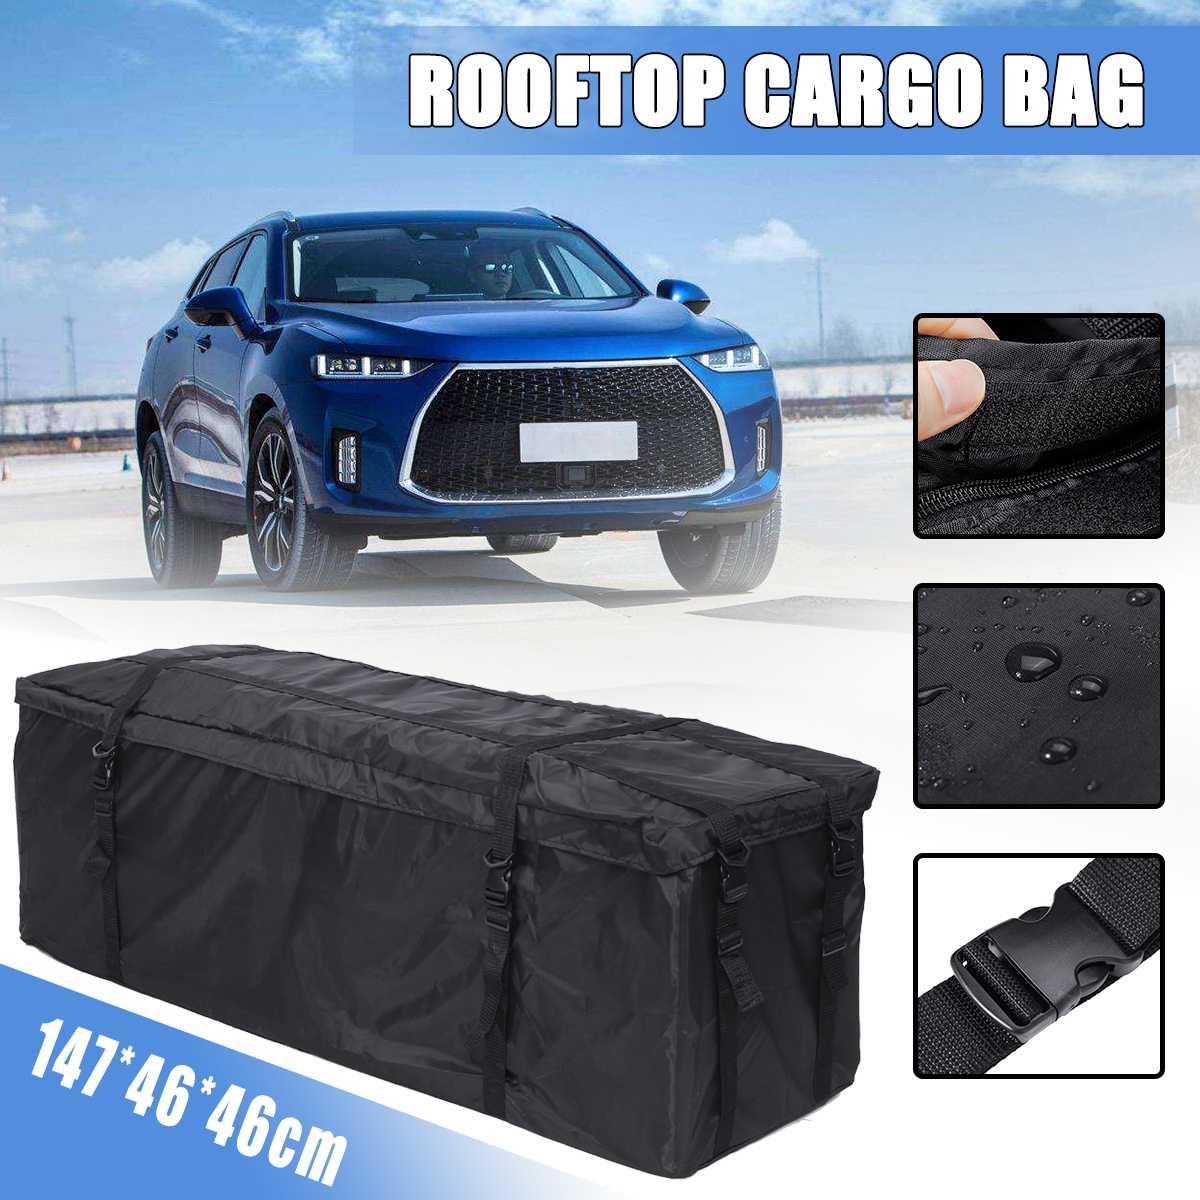 147x46x46cm Car Roof Top Bag Roof Top Bag Rack Cargo Carrier Luggage Storage Travel Waterproof Suv Van For Cars Roof Racks Boxes Aliexpress